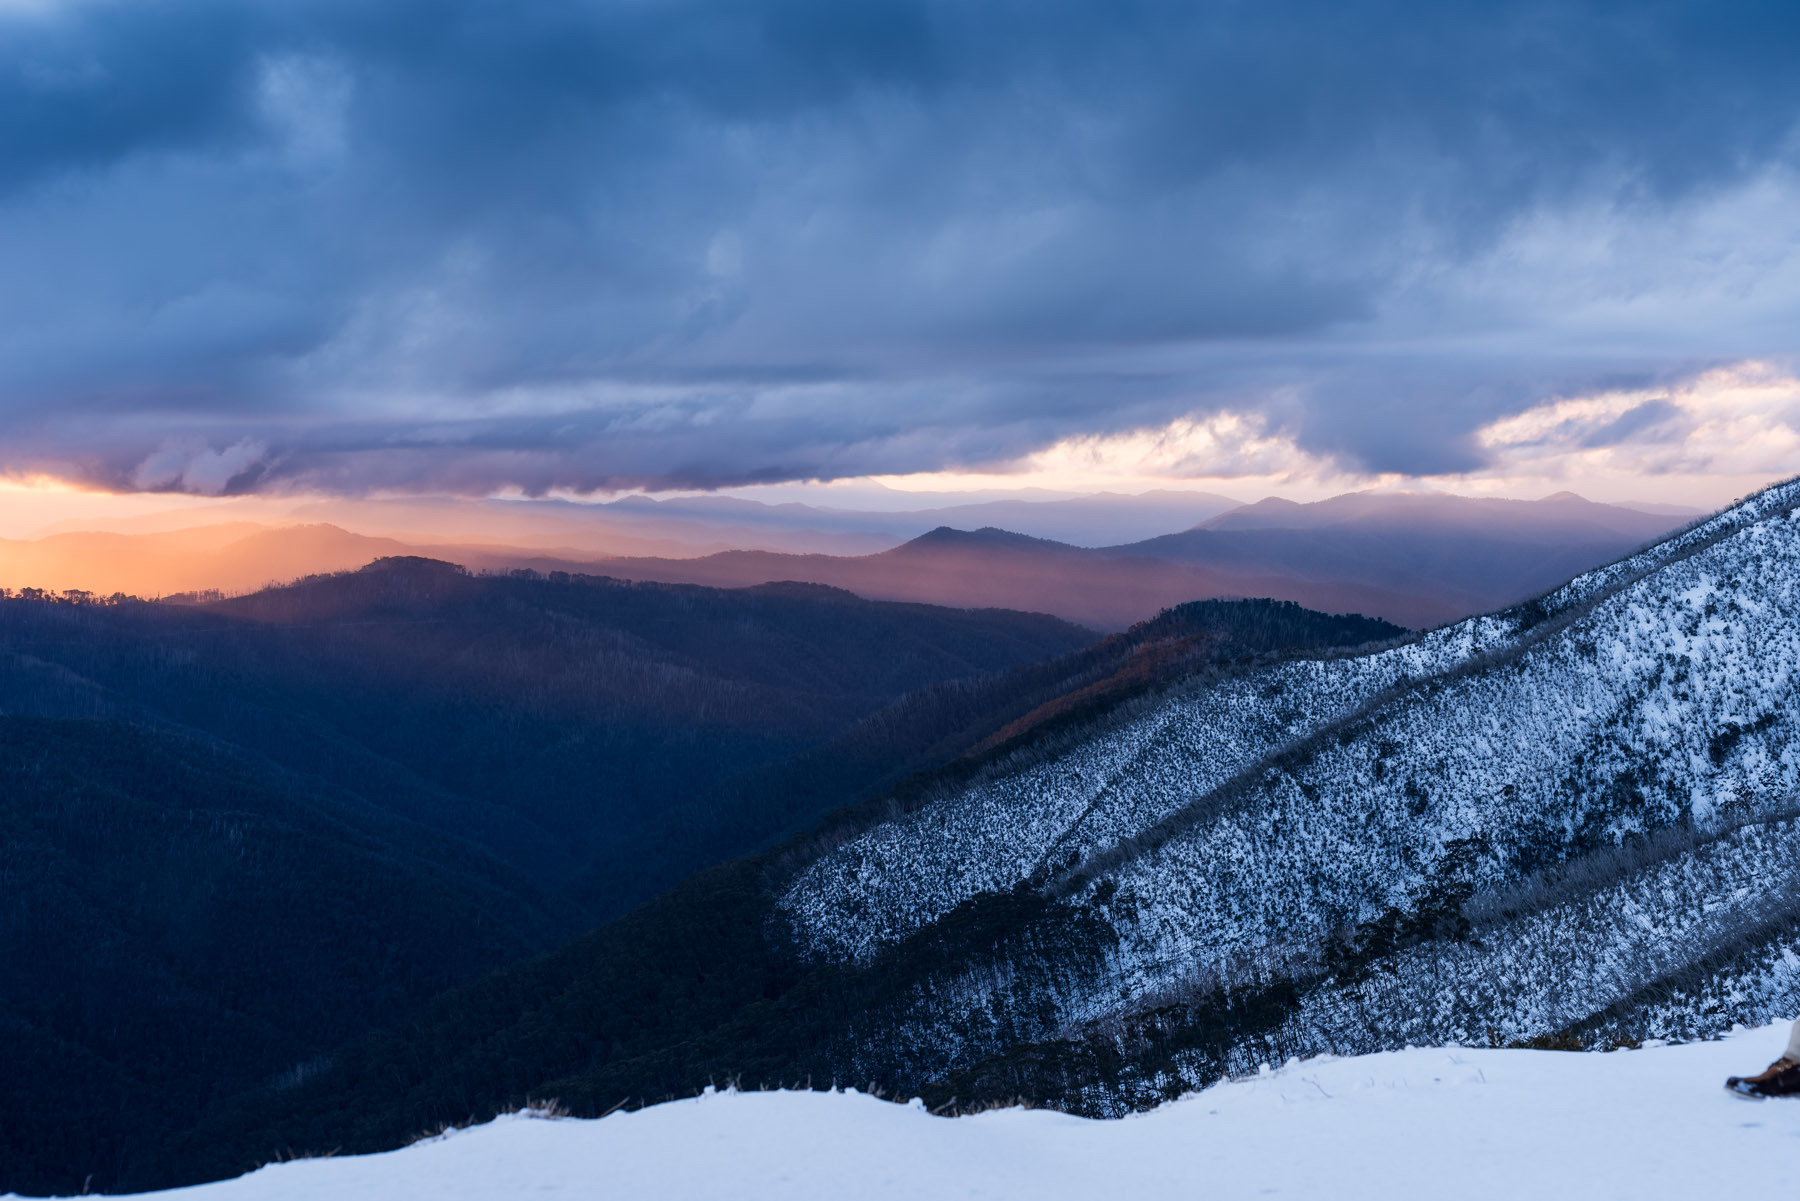 Mount Hotham mountain ranges